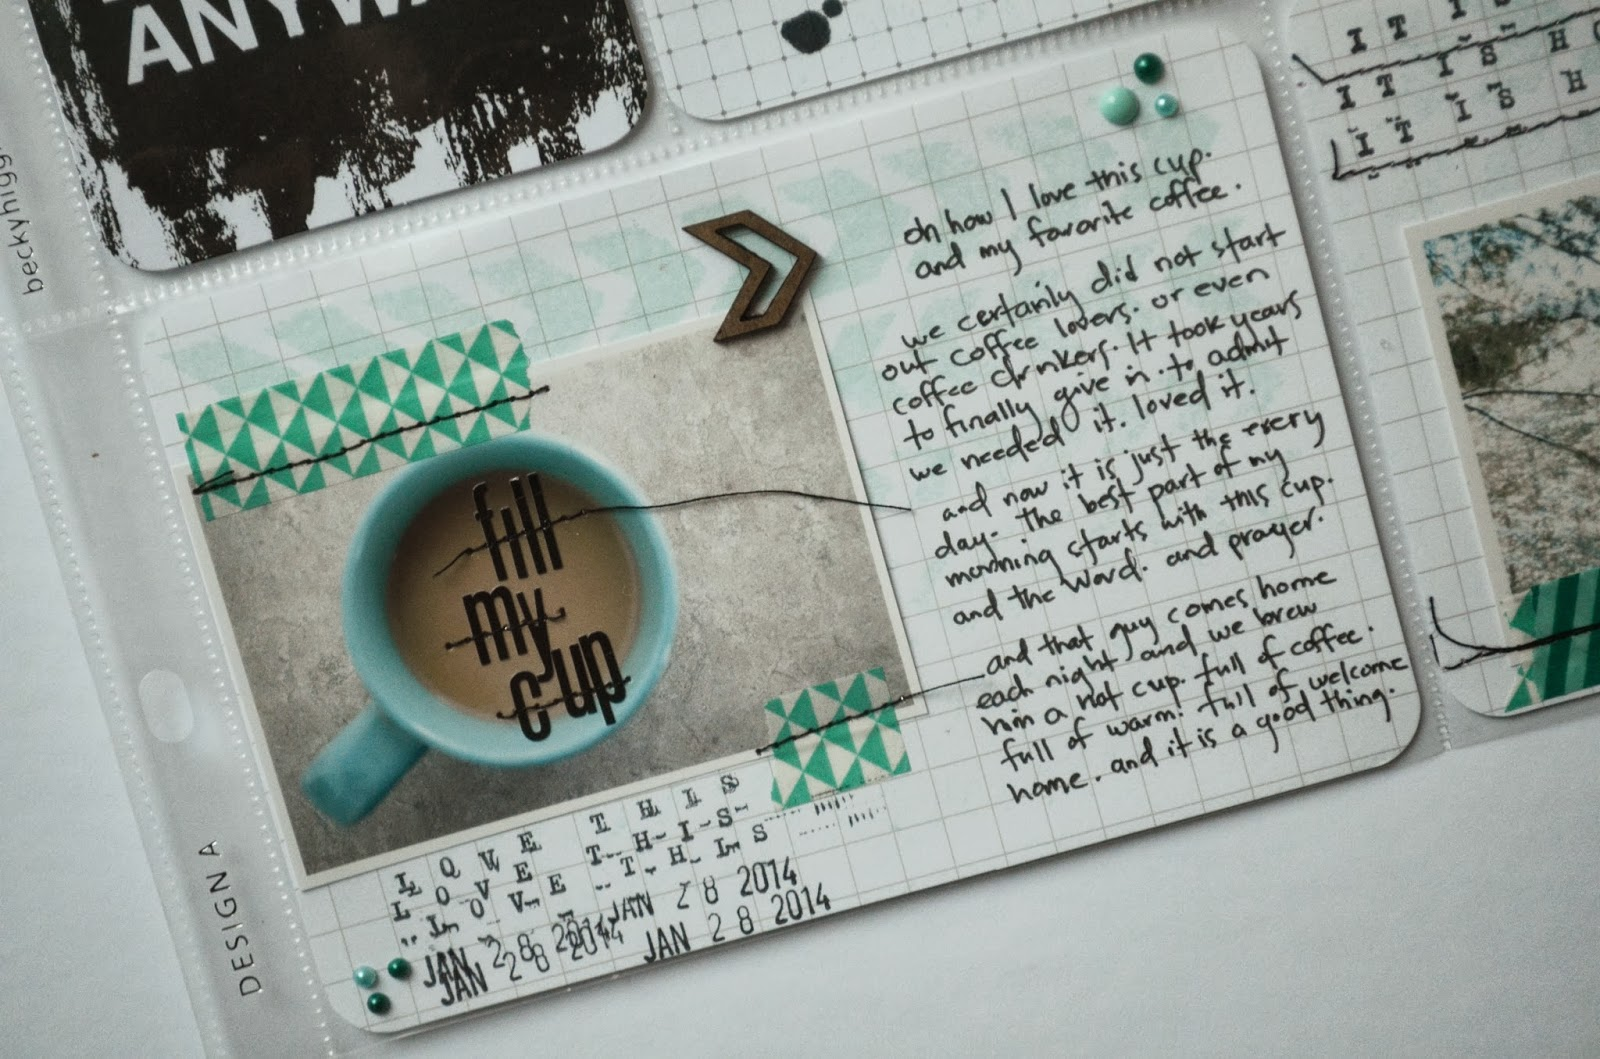 if you would like to see more on how the cards in this design came